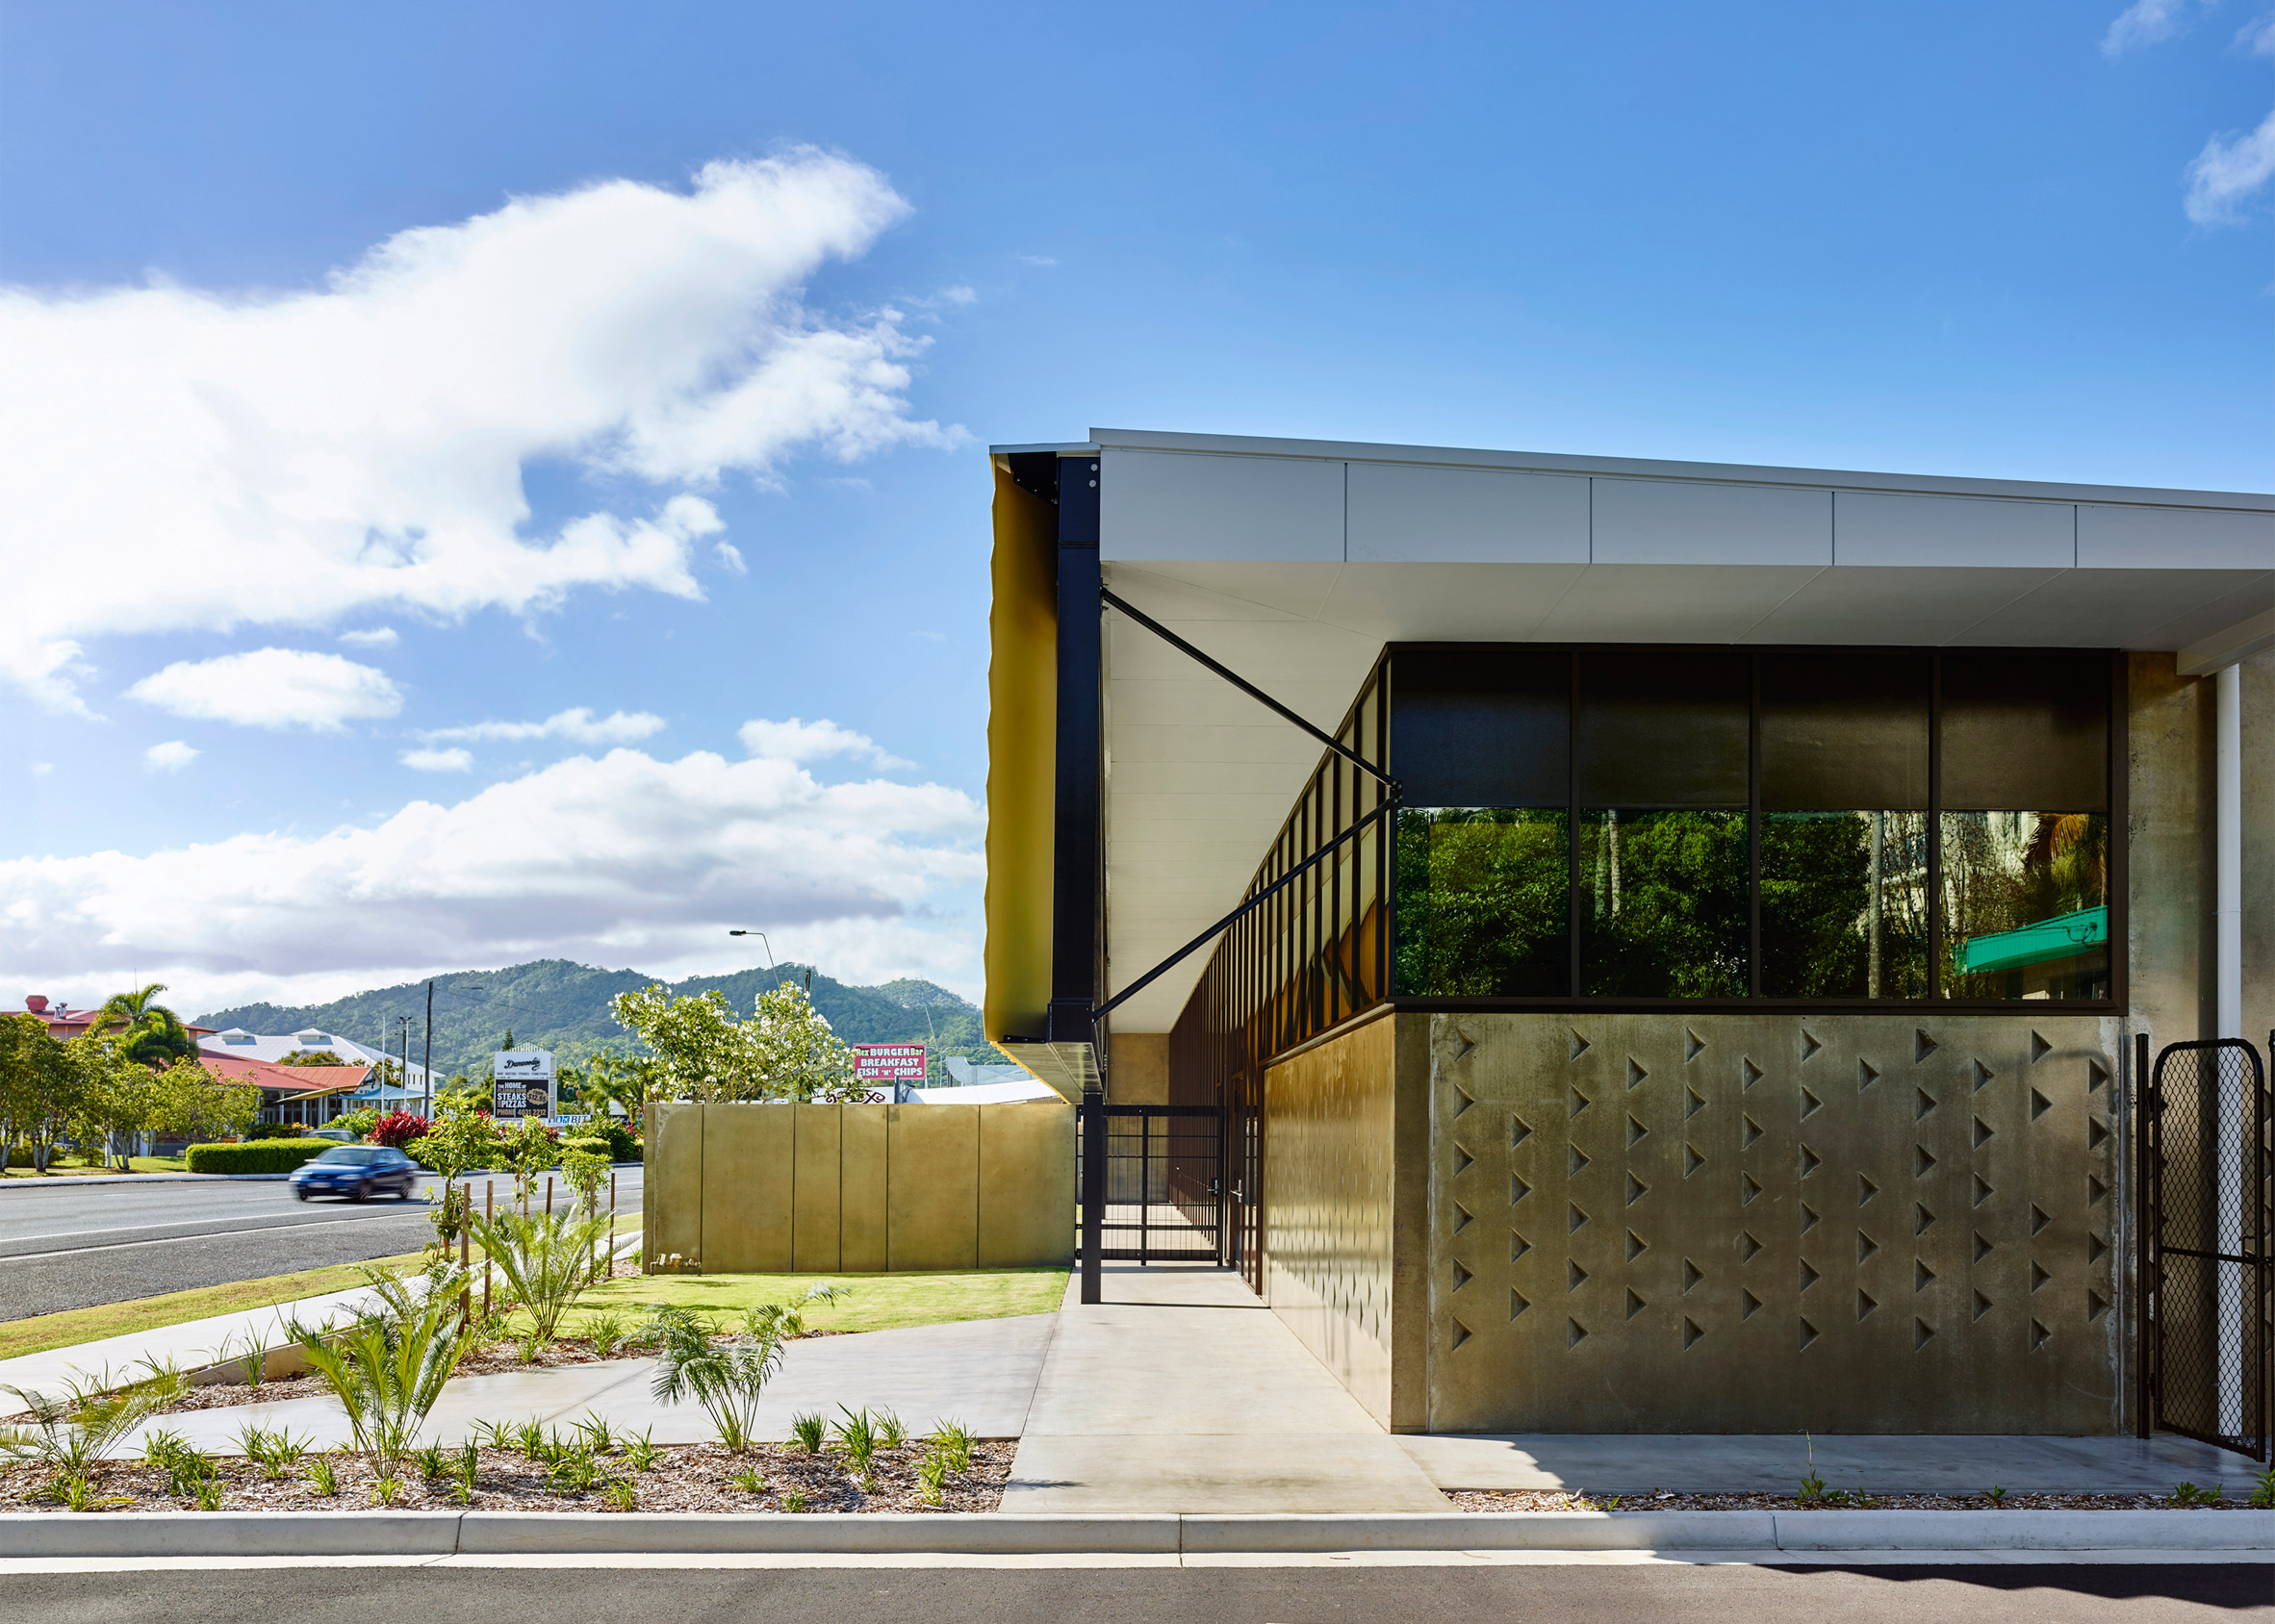 Australian Institute of Architects' 2016 National Architecture Awards 2016